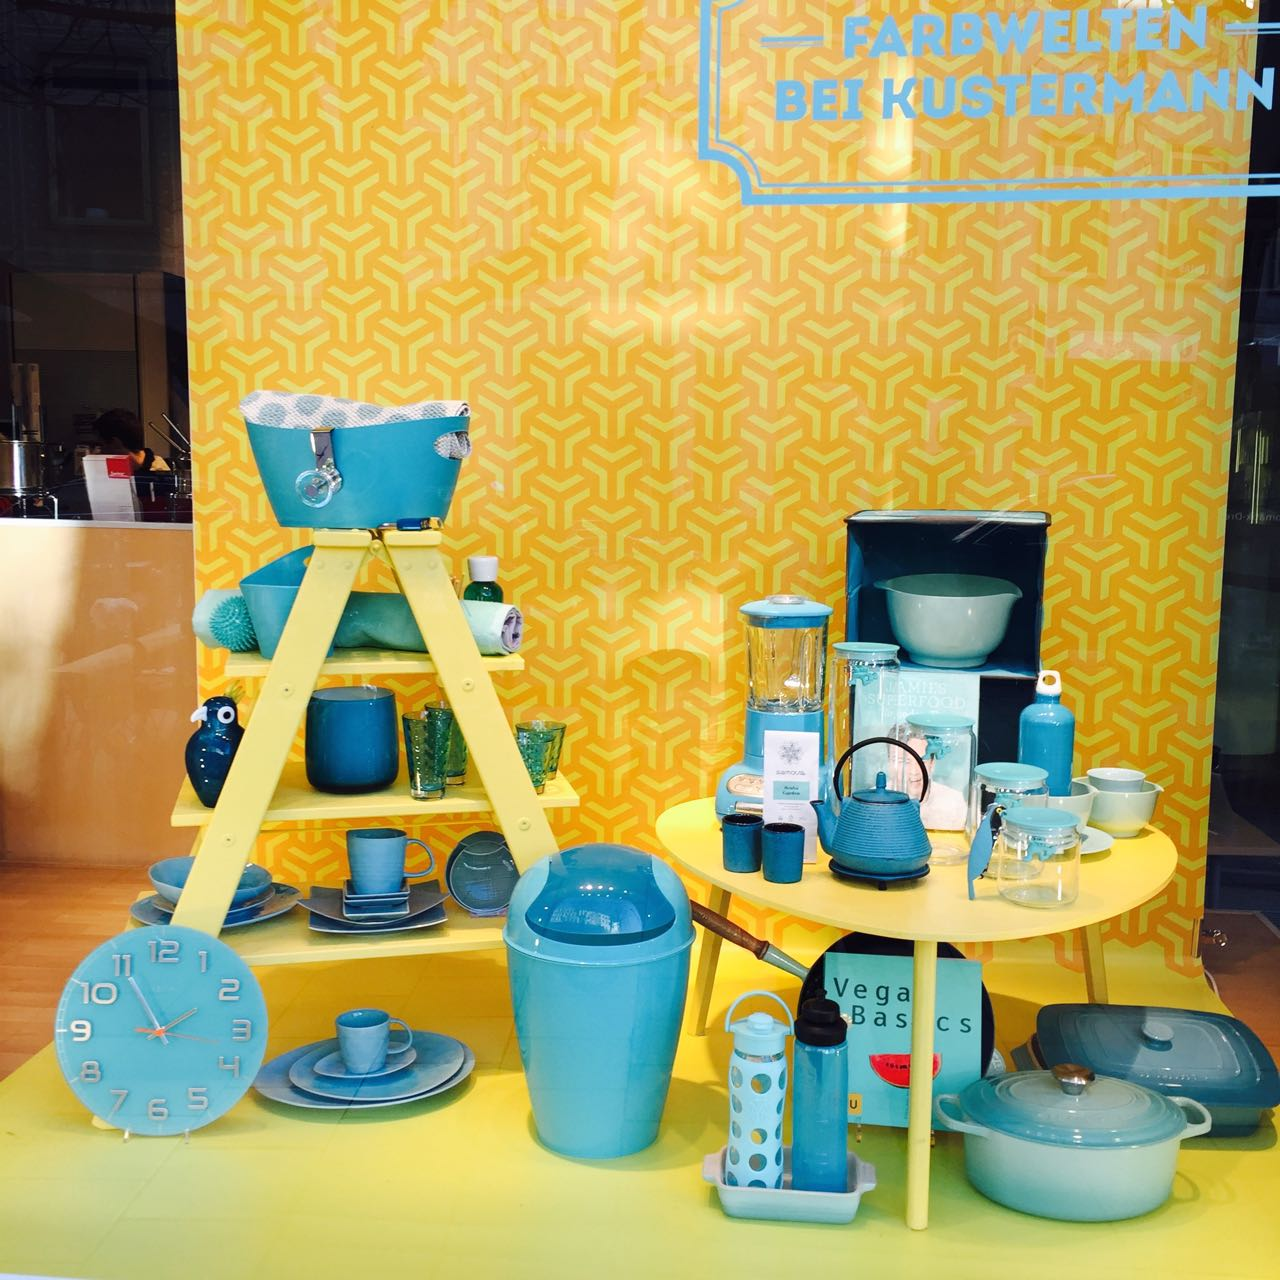 SATURDAY SMALL BUSINESS RETAIL VISUAL MERCHANDISING INSPIRATION